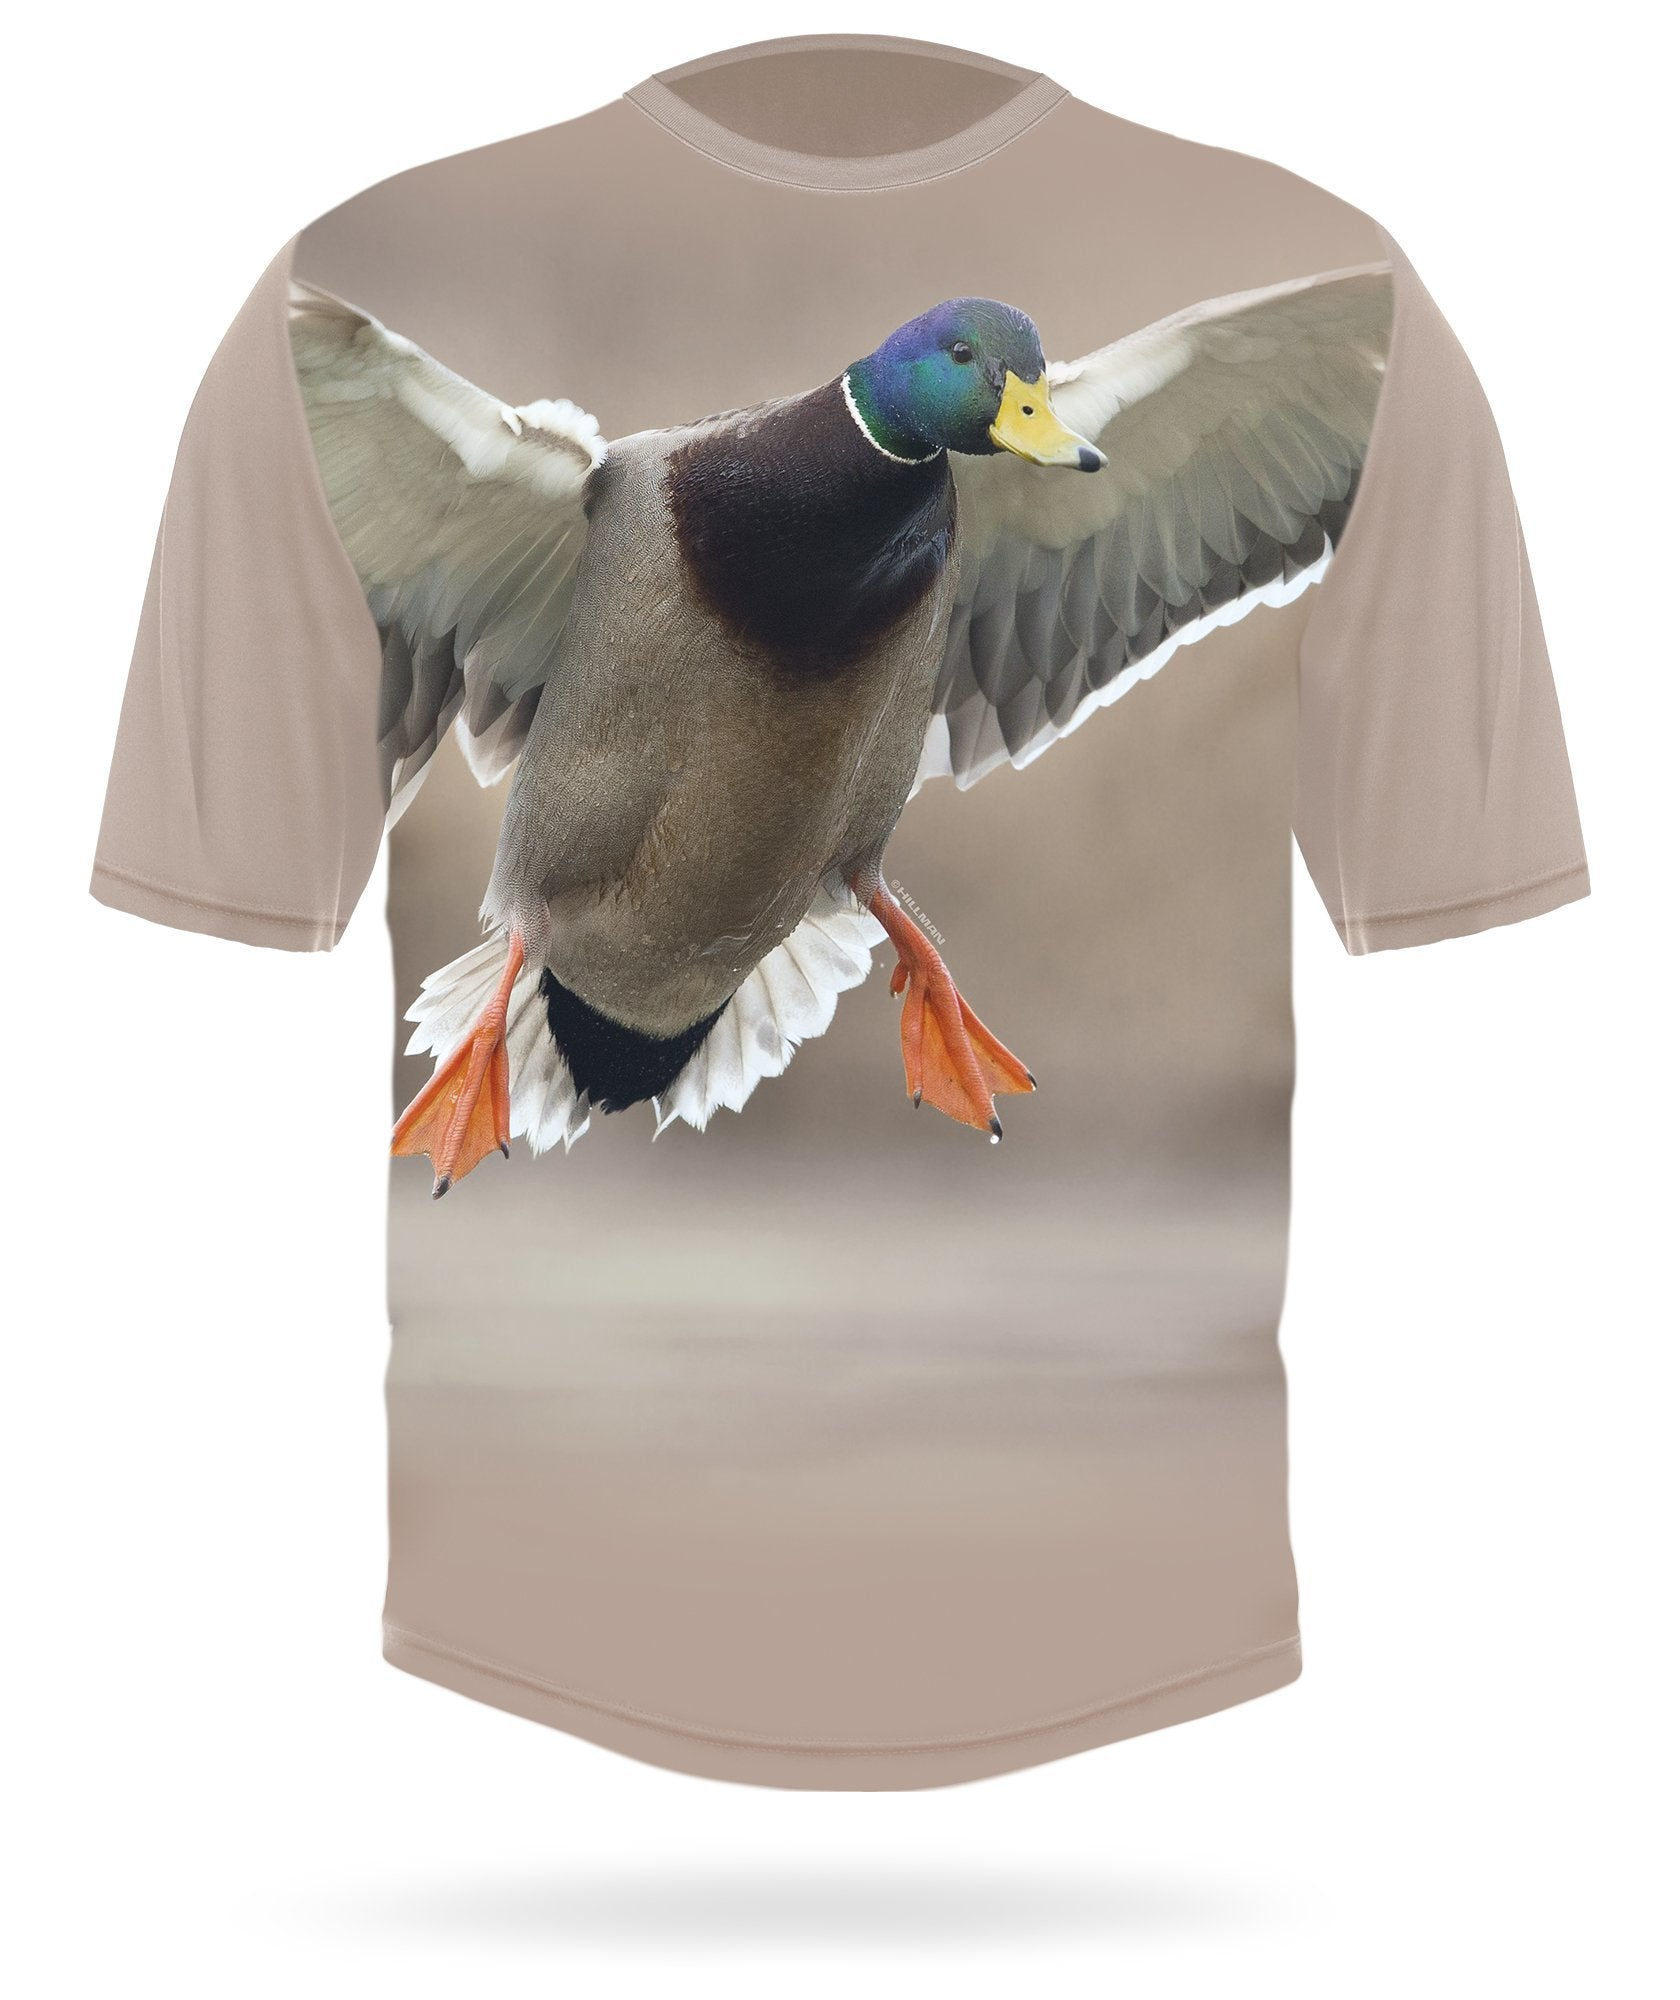 Mallard T-shirt Landing Short sleeve by HILLMAN®